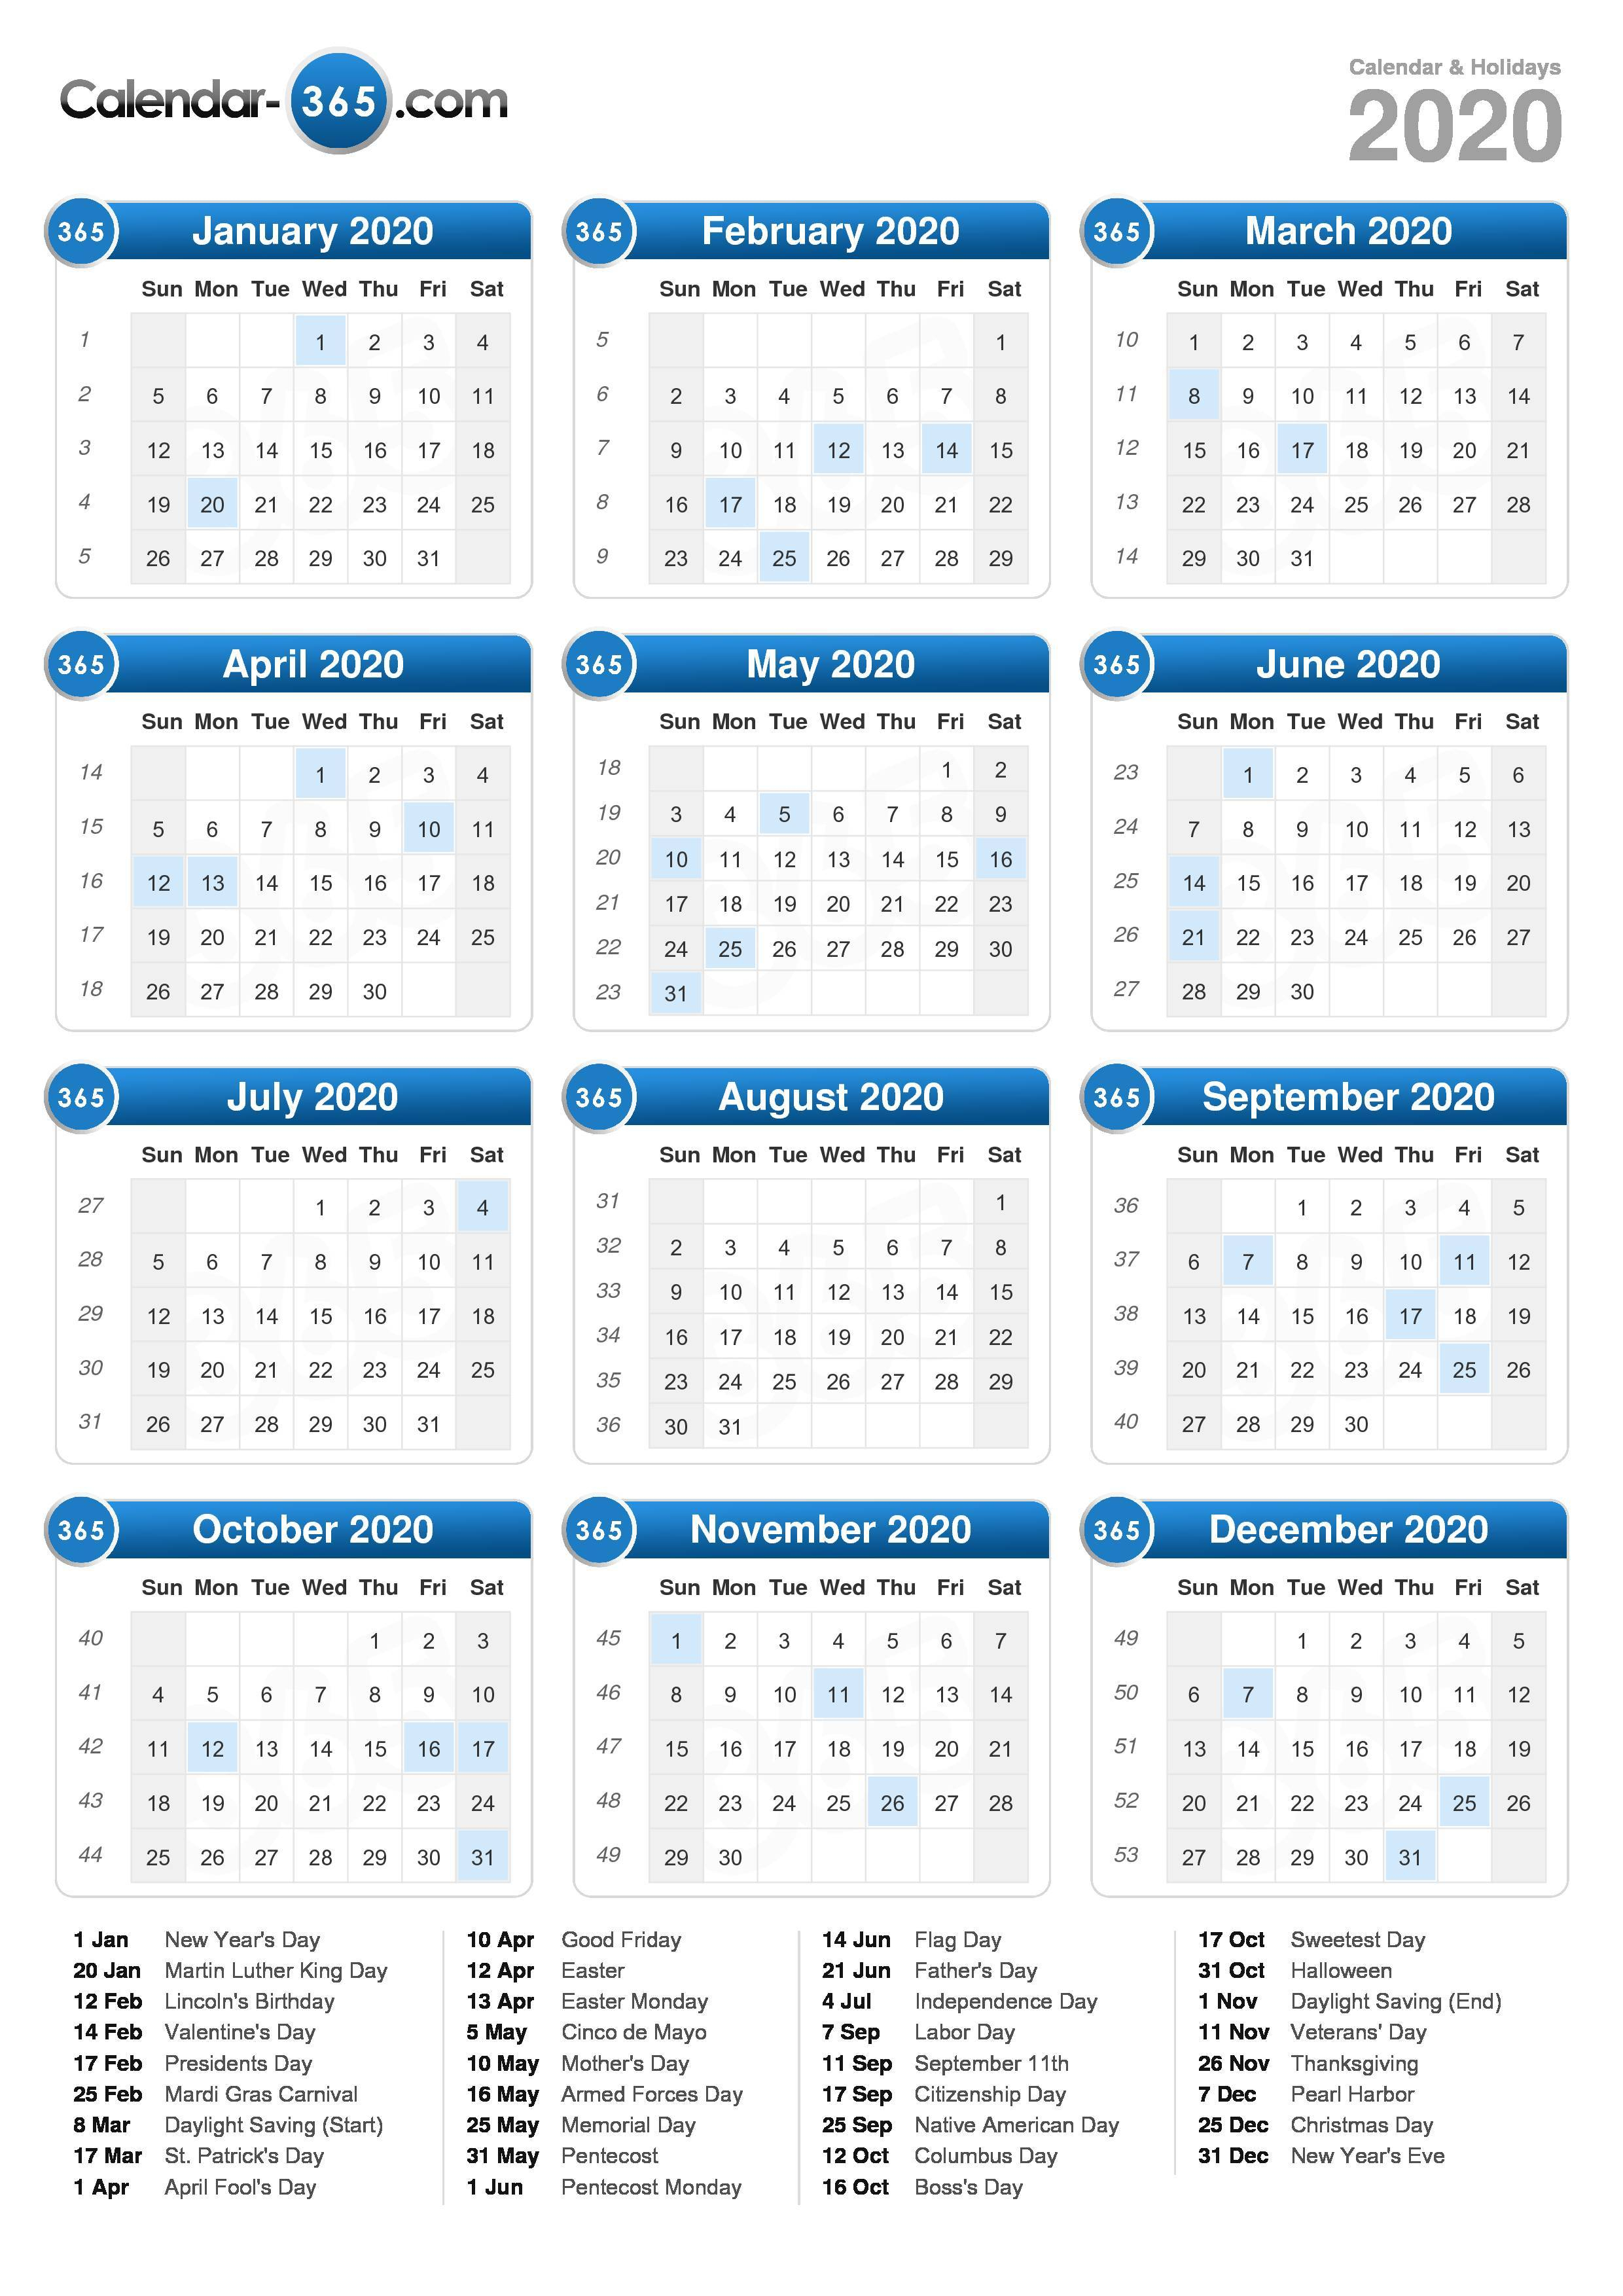 2020 Calendar intended for 2020 Calendar Starting With Monday